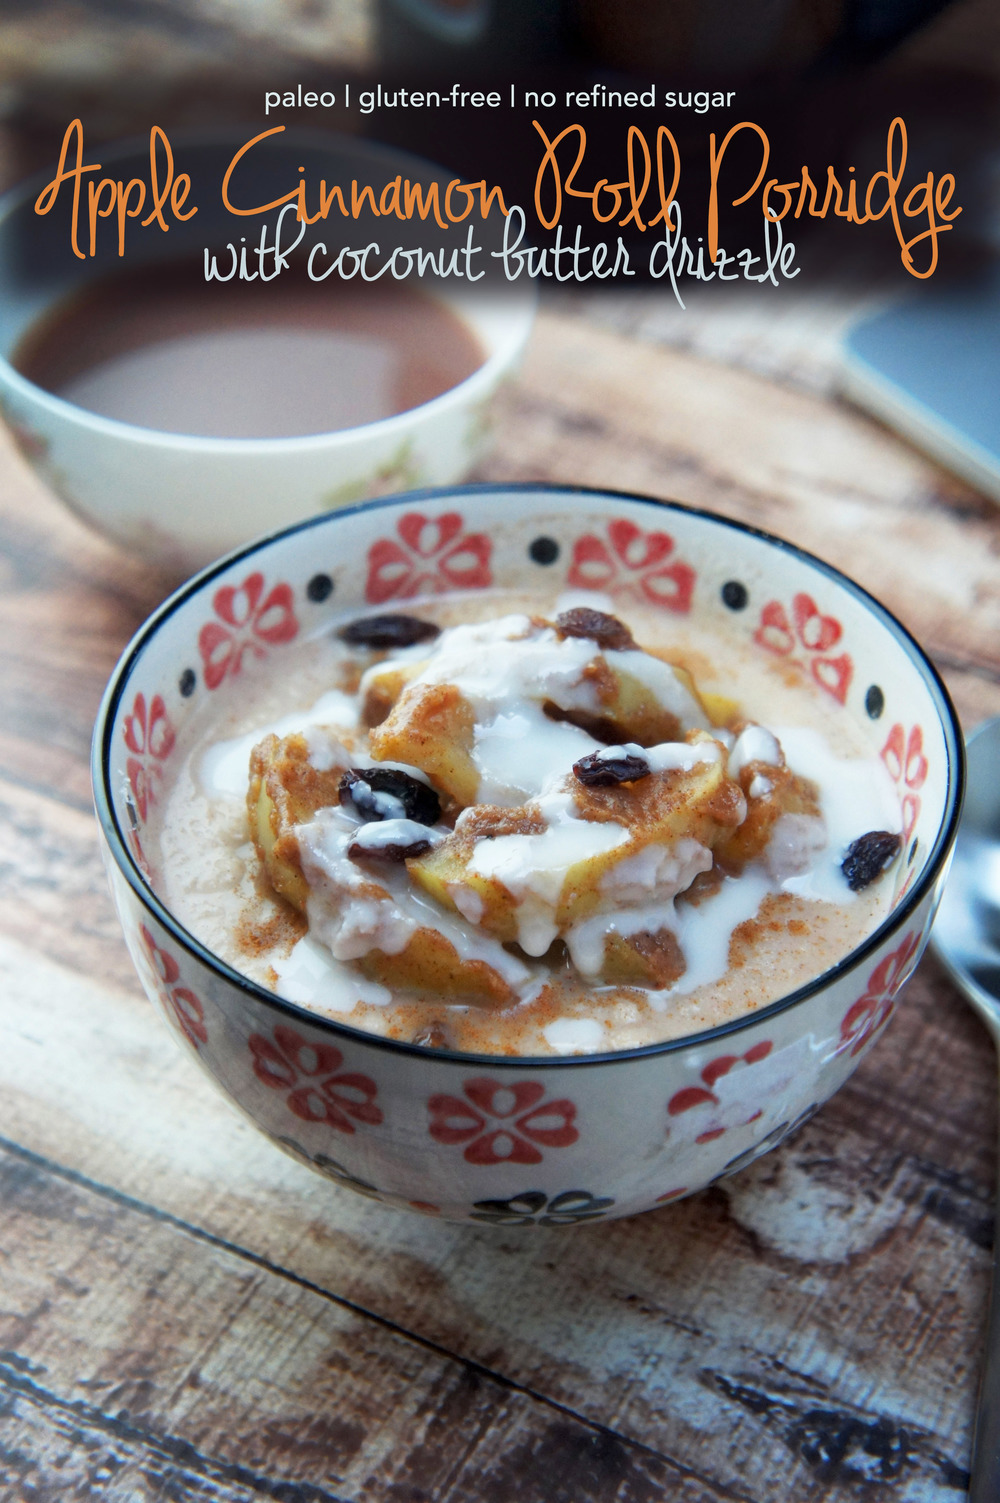 Apple Cinnamon Roll Paleo Porridge with Coconut Butter Drizzle